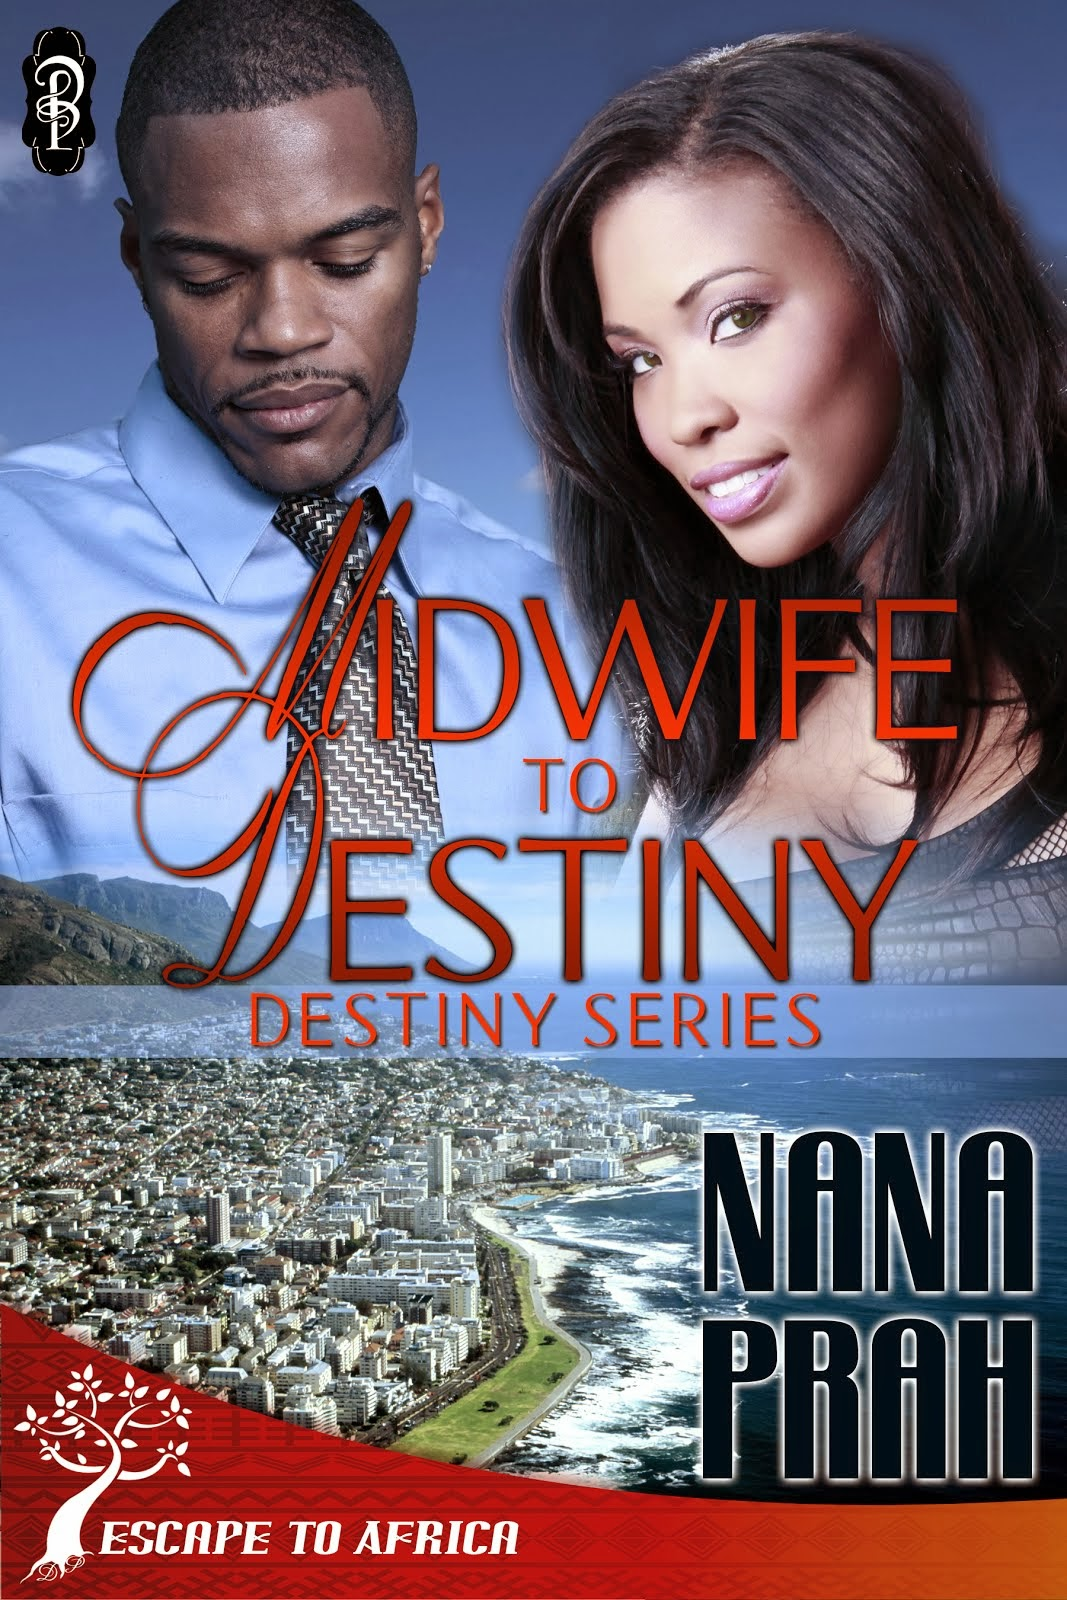 Romance in Africa. Get your copy now.